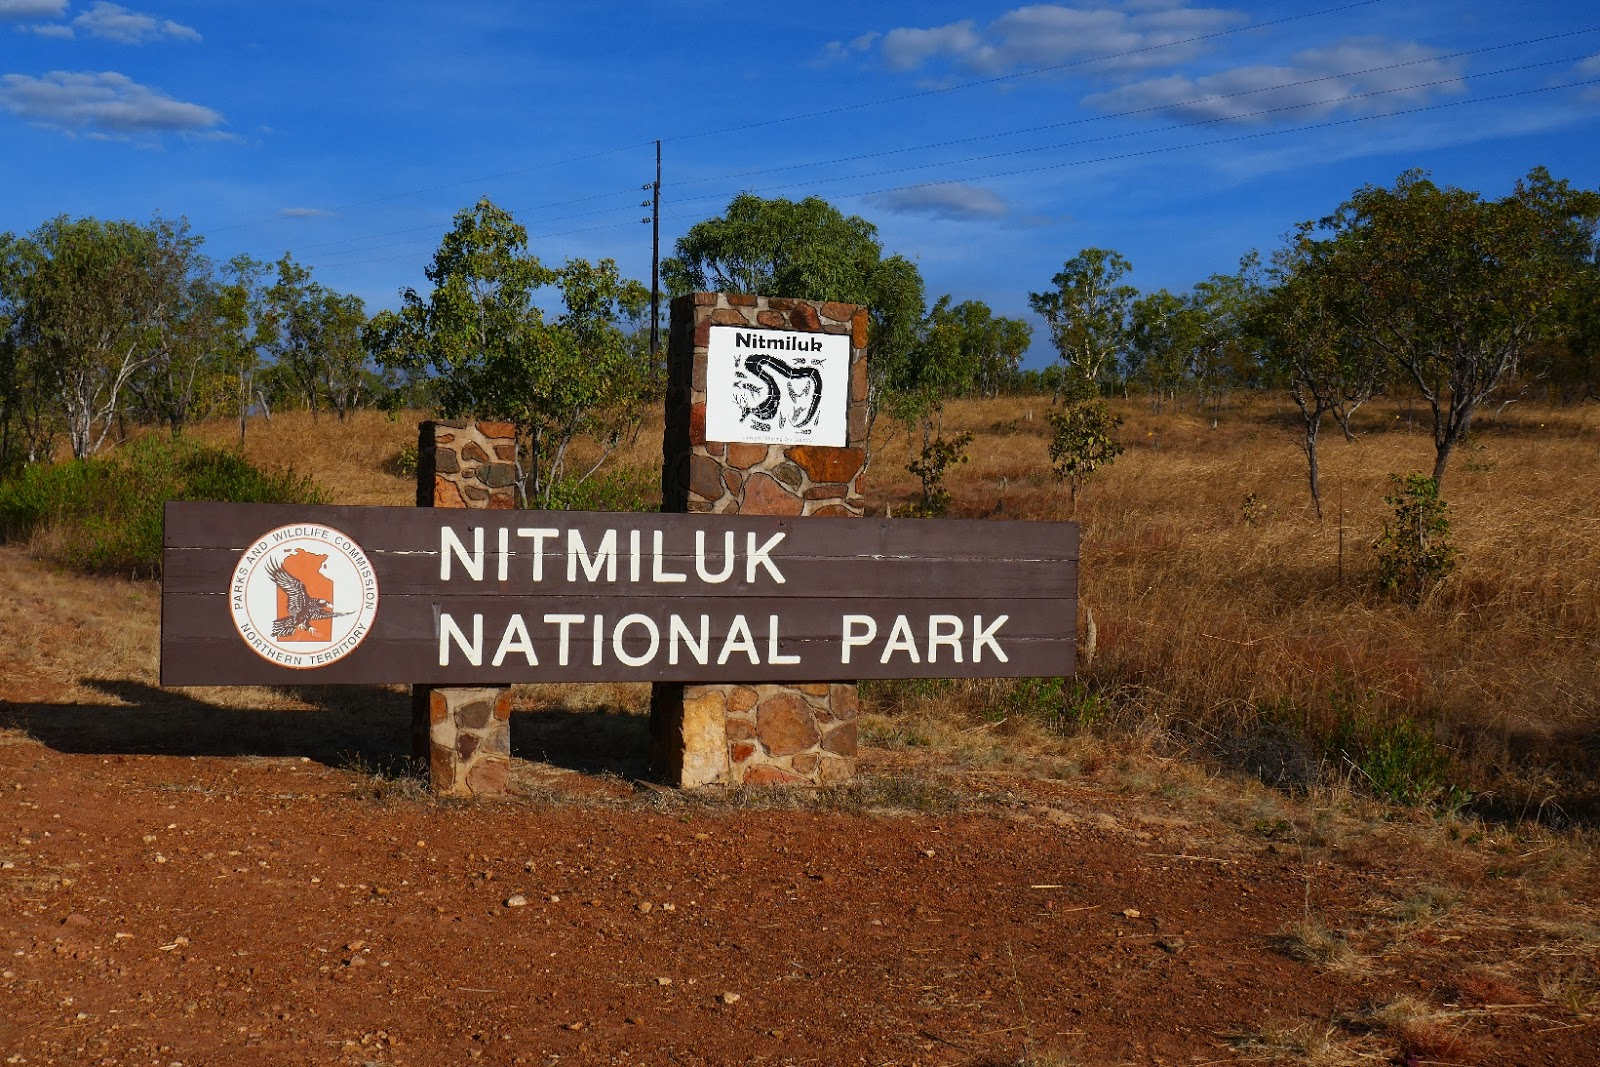 Manu & Tobi on tour...: Australien / Nitmiluk Nationalpark